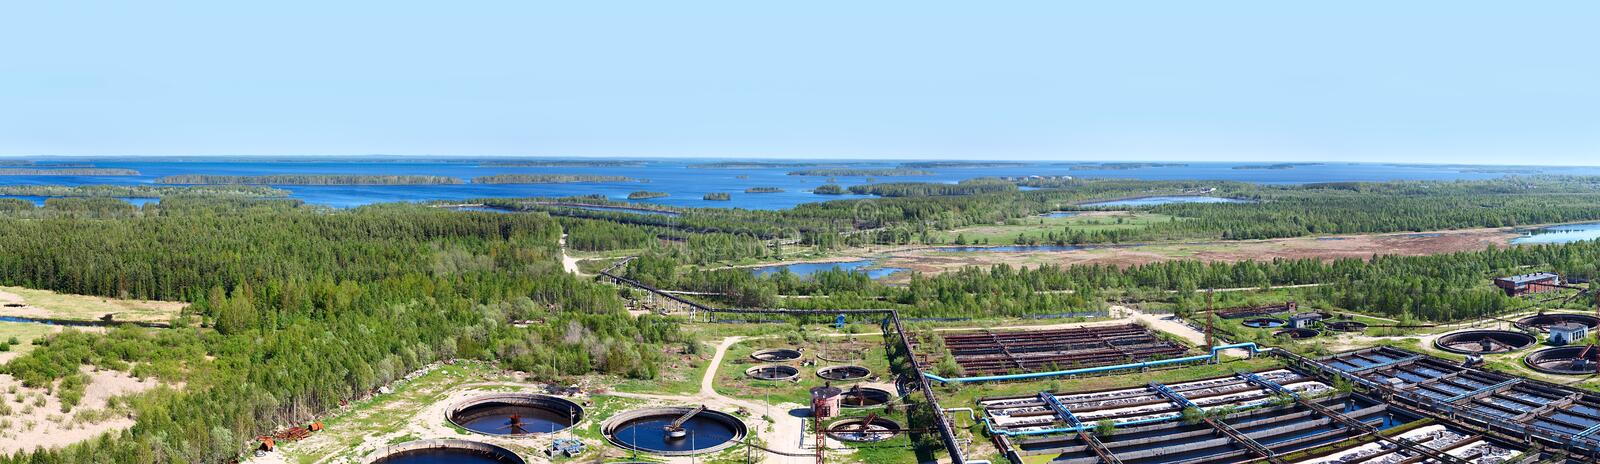 Panorama of water recycling sewage station royalty free stock photography